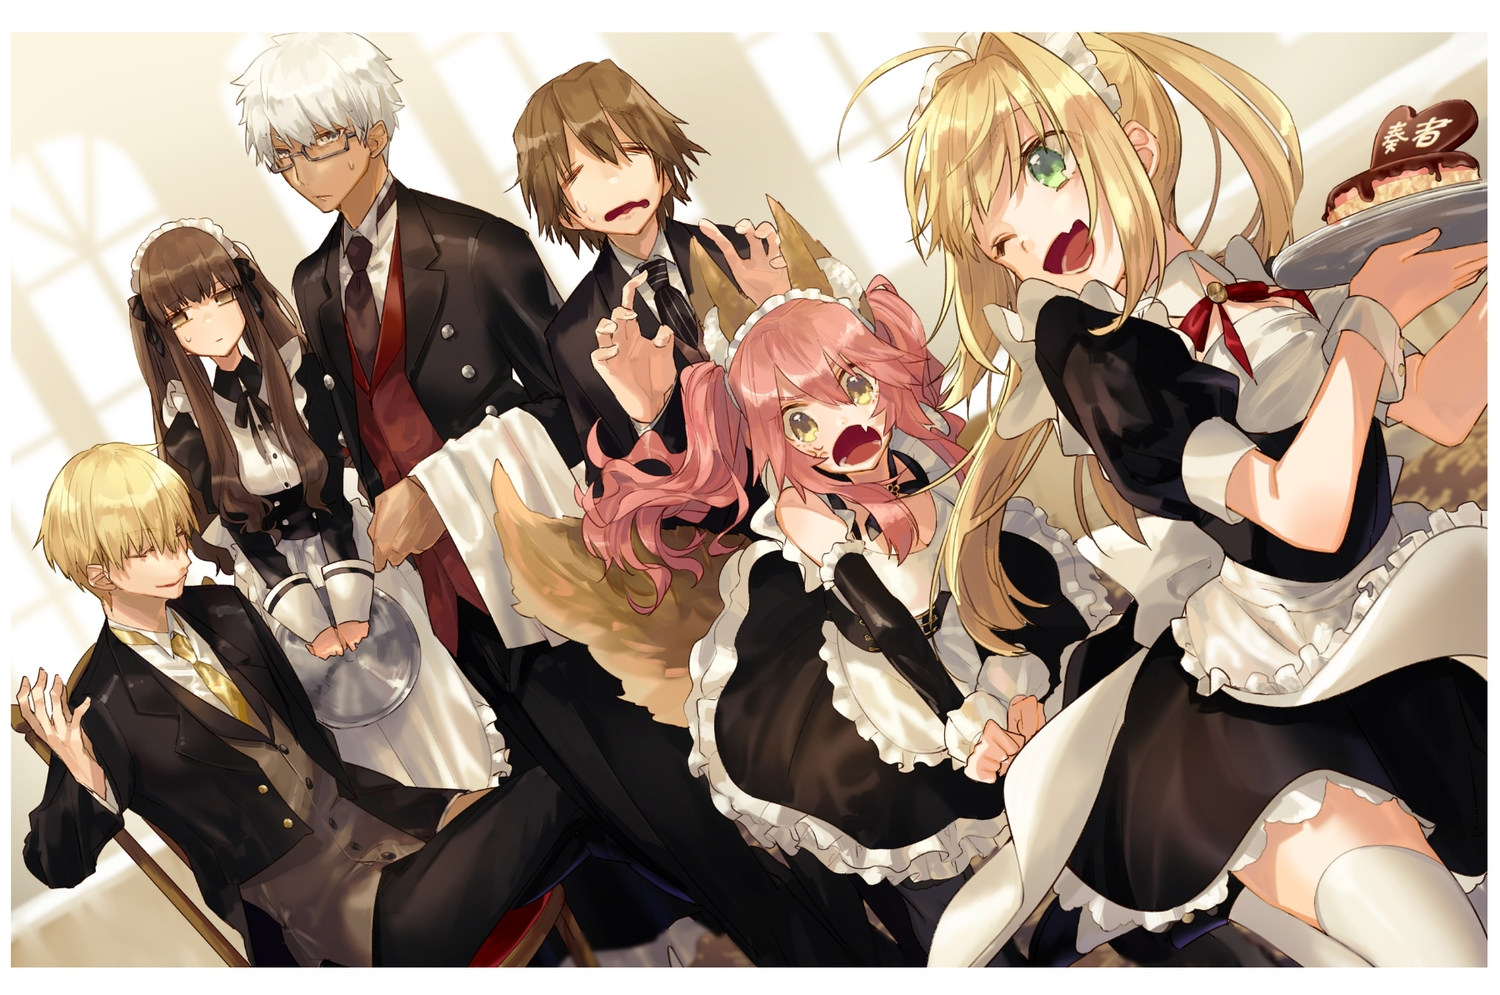 animal_ears blonde_hair bow brown_hair cake dress fang fate/extra fate/extra_ccc fate_(series) food gilgamesh glasses green_eyes hino_hinako long_hair maid male nero_claudius_(fate) pink_hair short_hair suit tagme_(character) tail tamamo_no_mae_(fate) twintails white_hair yellow_eyes